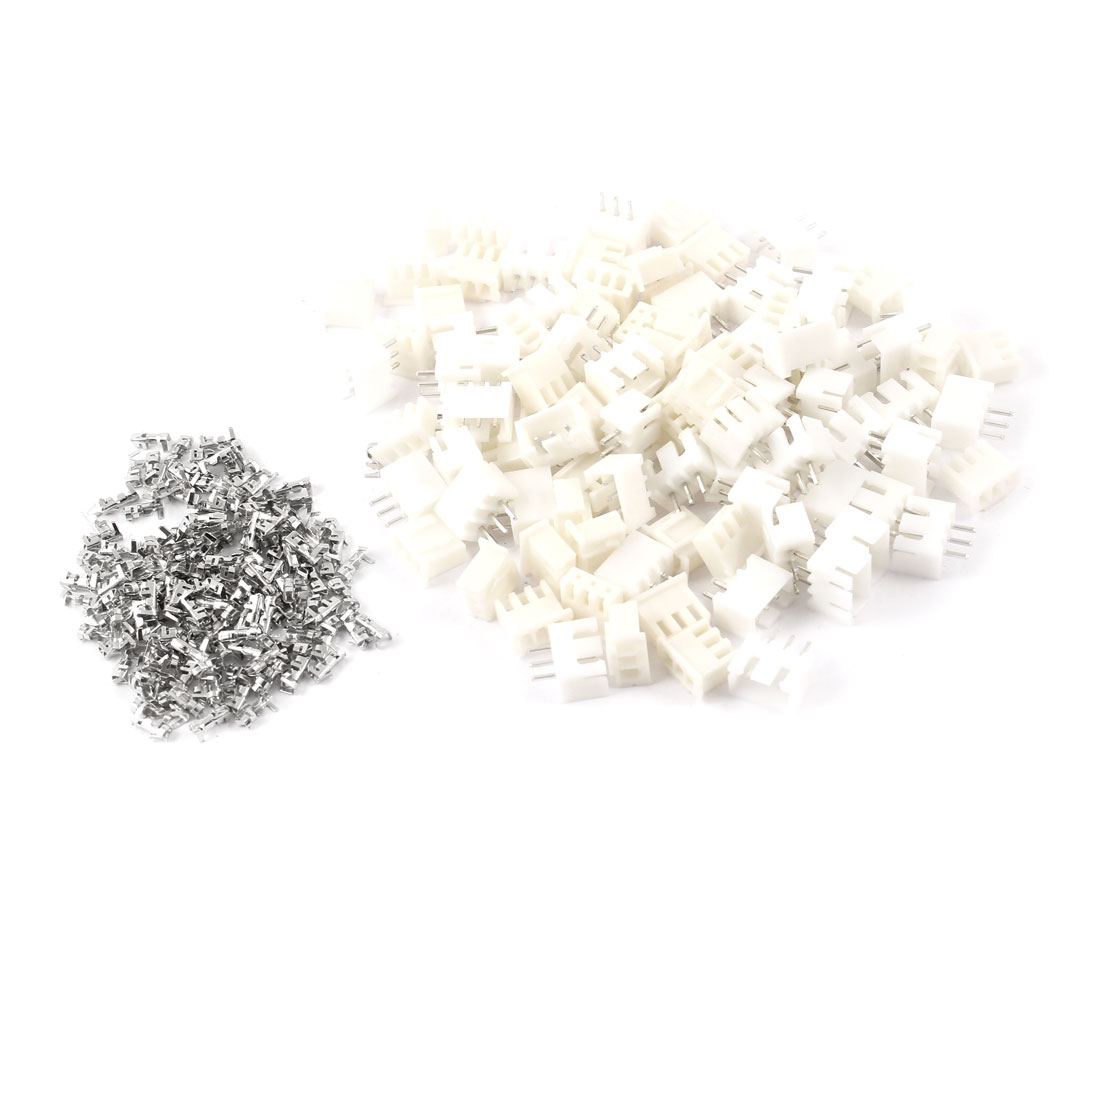 50 Pairs AC 220V 1A 3 Pins PCB Mount Block Terminal Connectors White